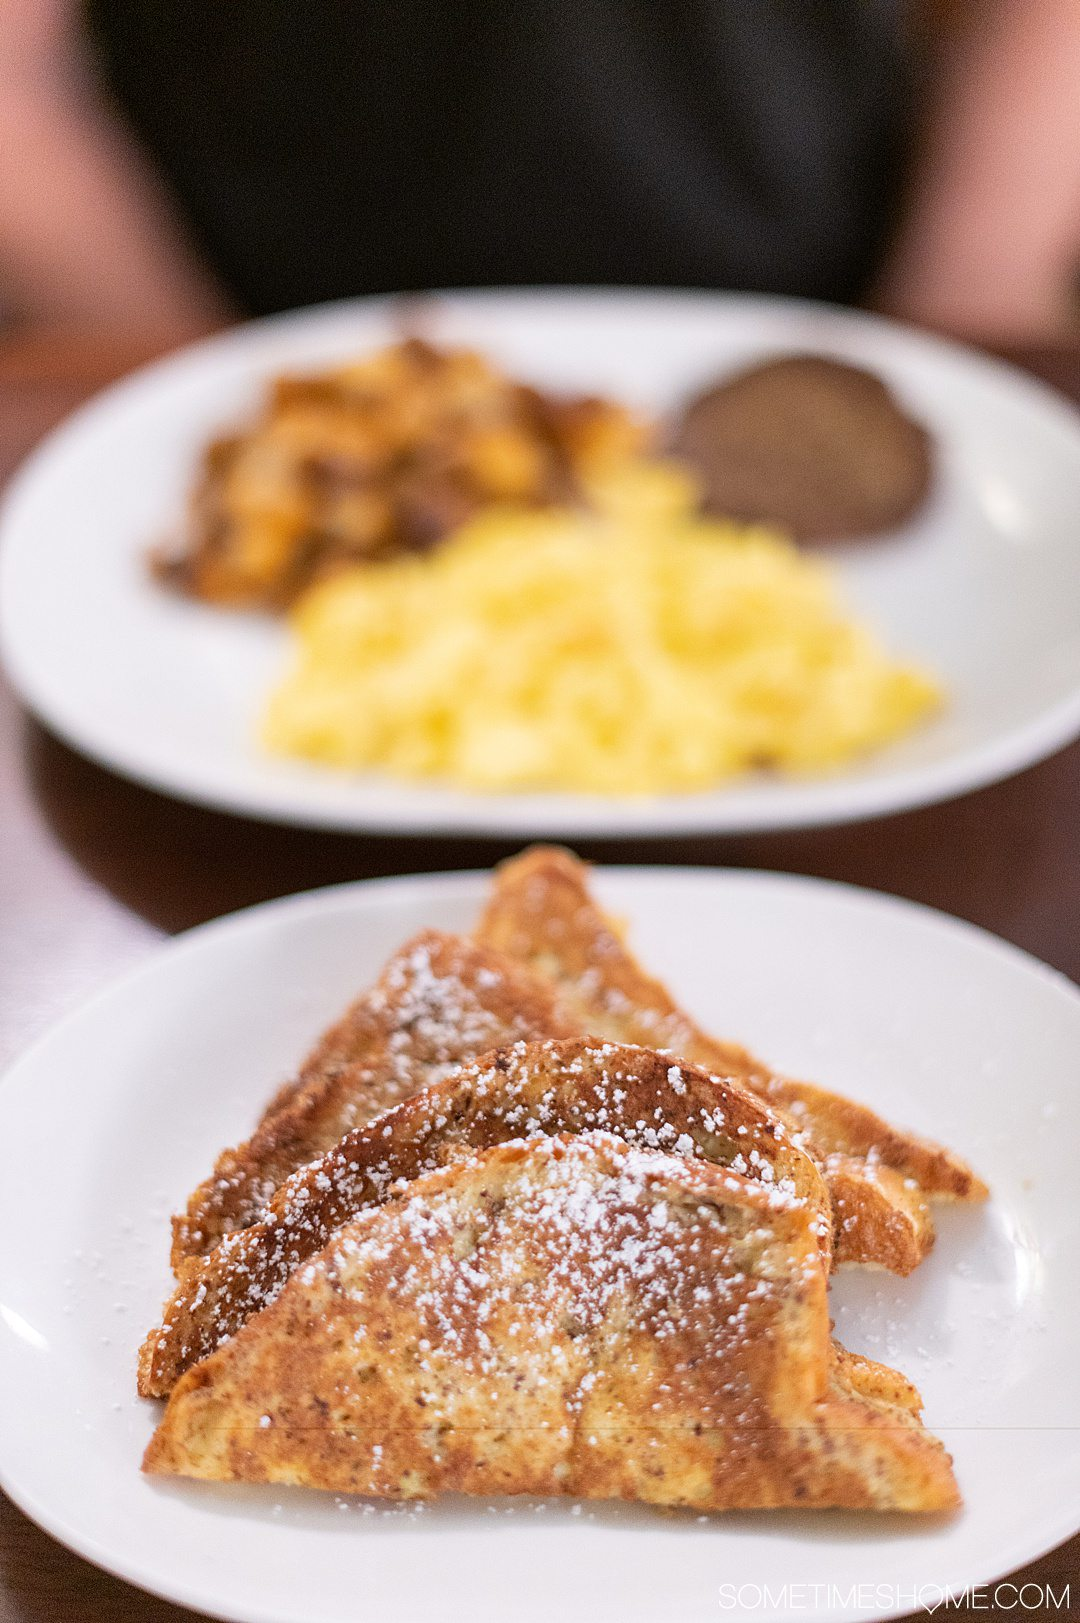 A plate of French toast in the foreground and eggs, potatoes and sausage blurry in the background.